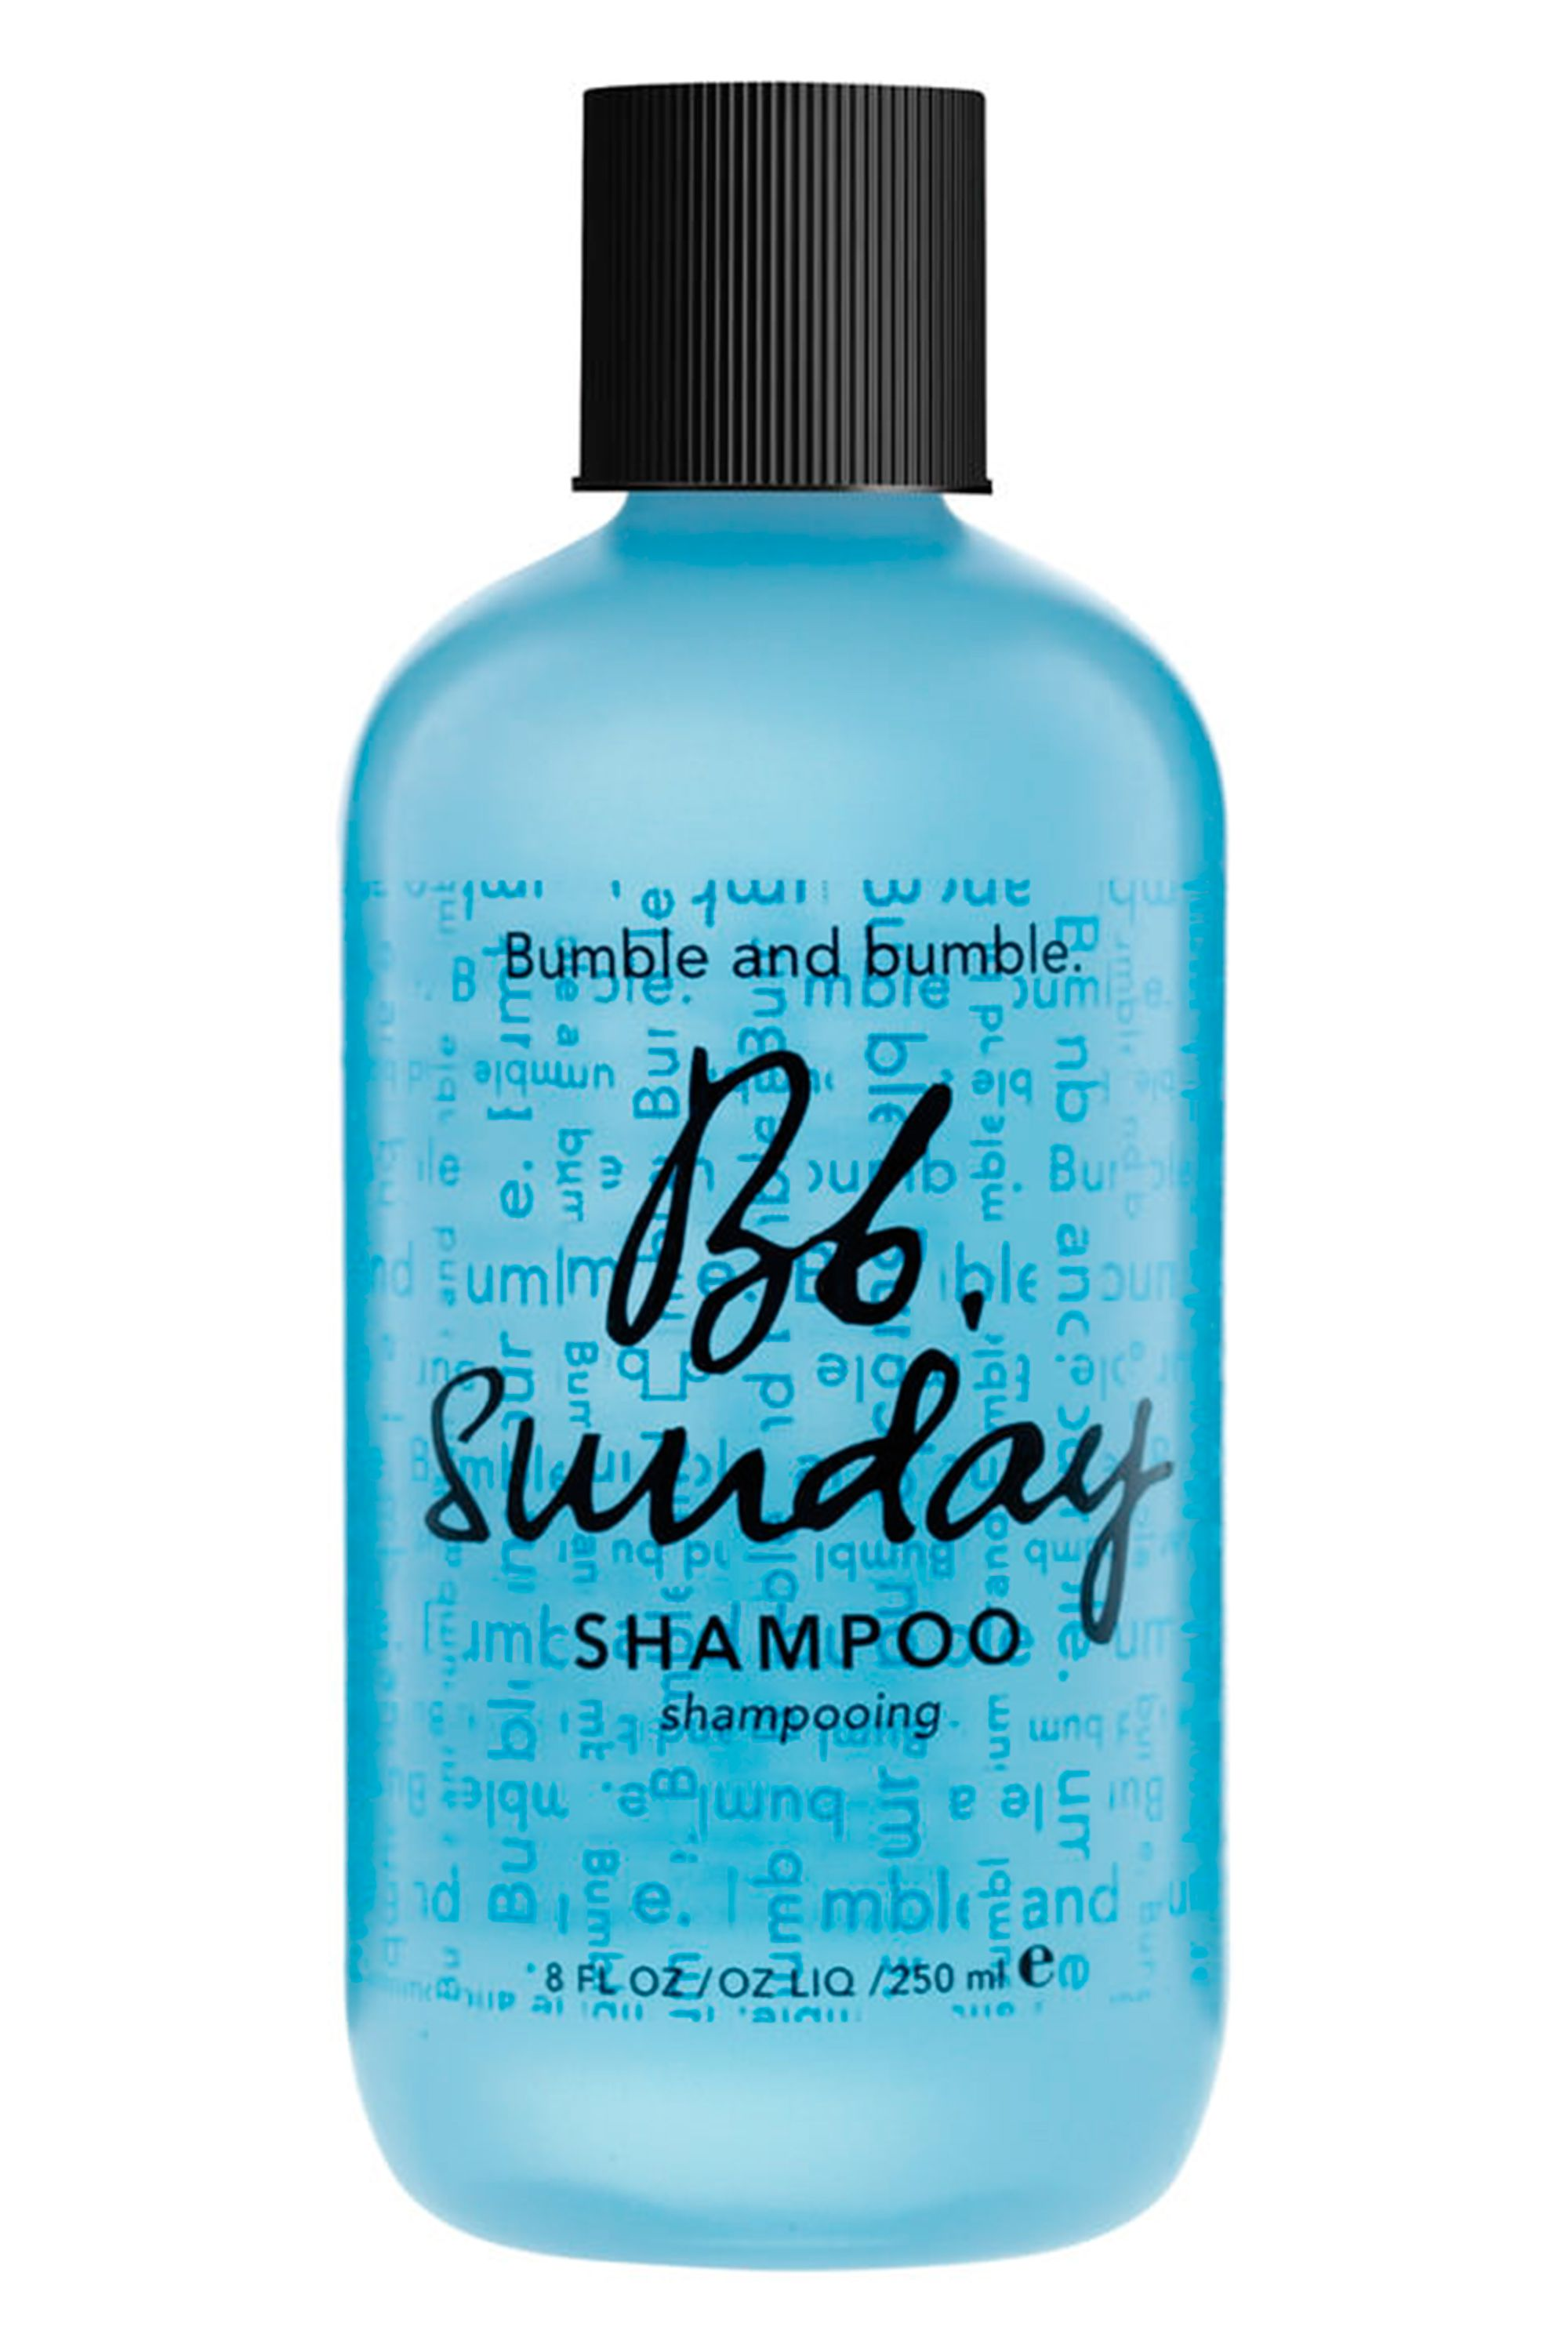 Clarifying shampoo - 9 best formulas ranked by Cosmo Editors